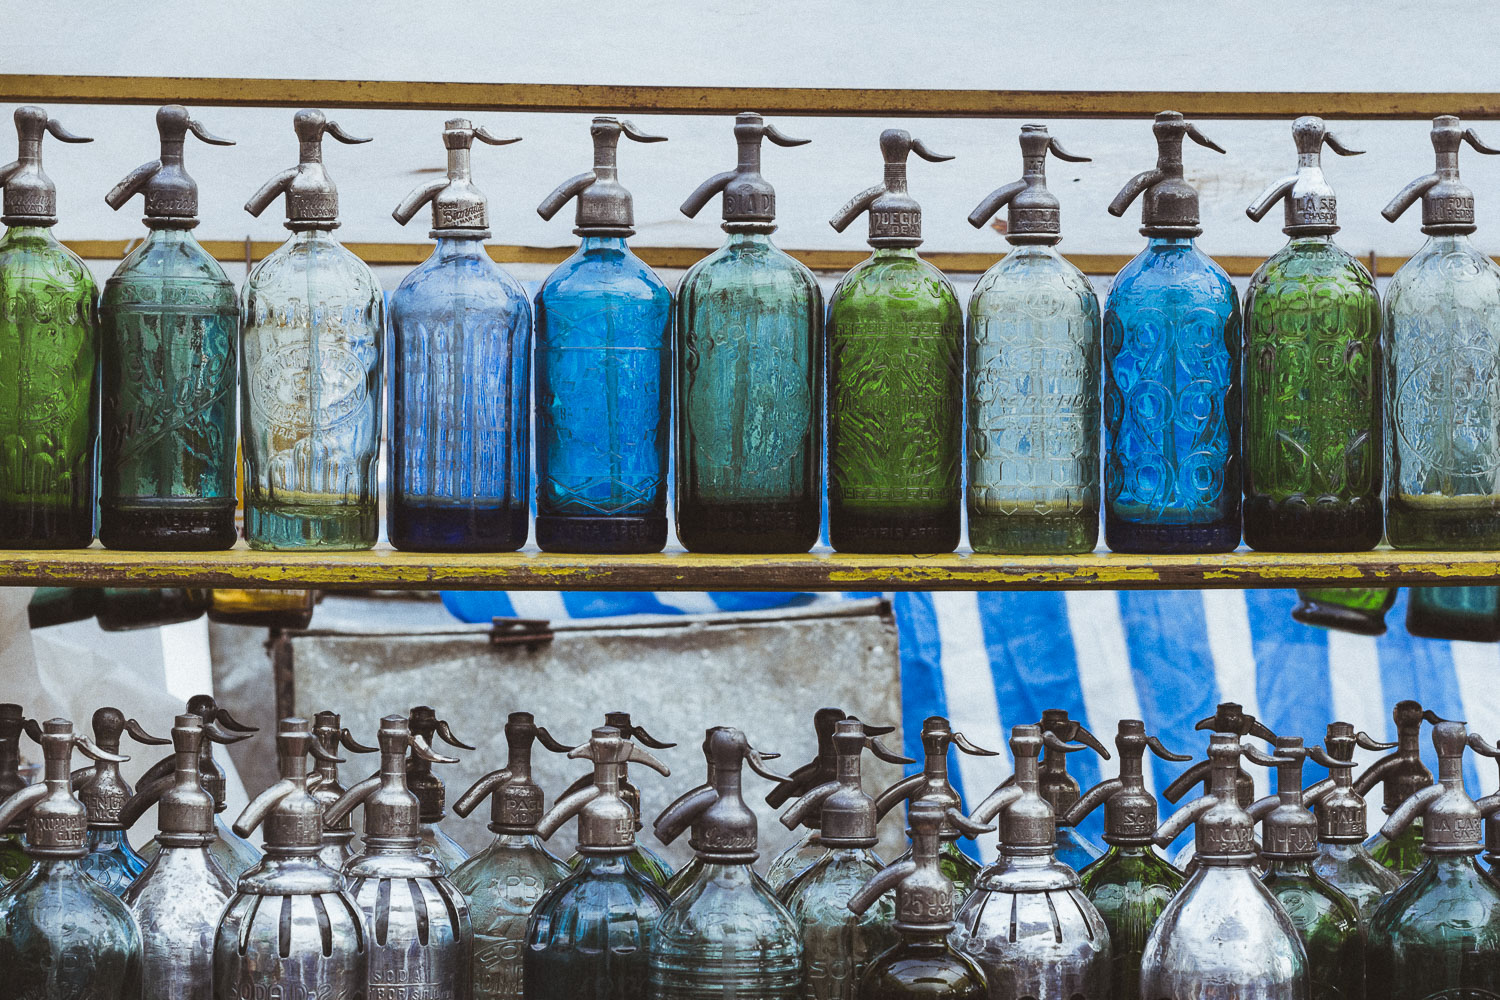 San Telmo Market - A walk through one of Buenos Aires most famous Sunday Markets.